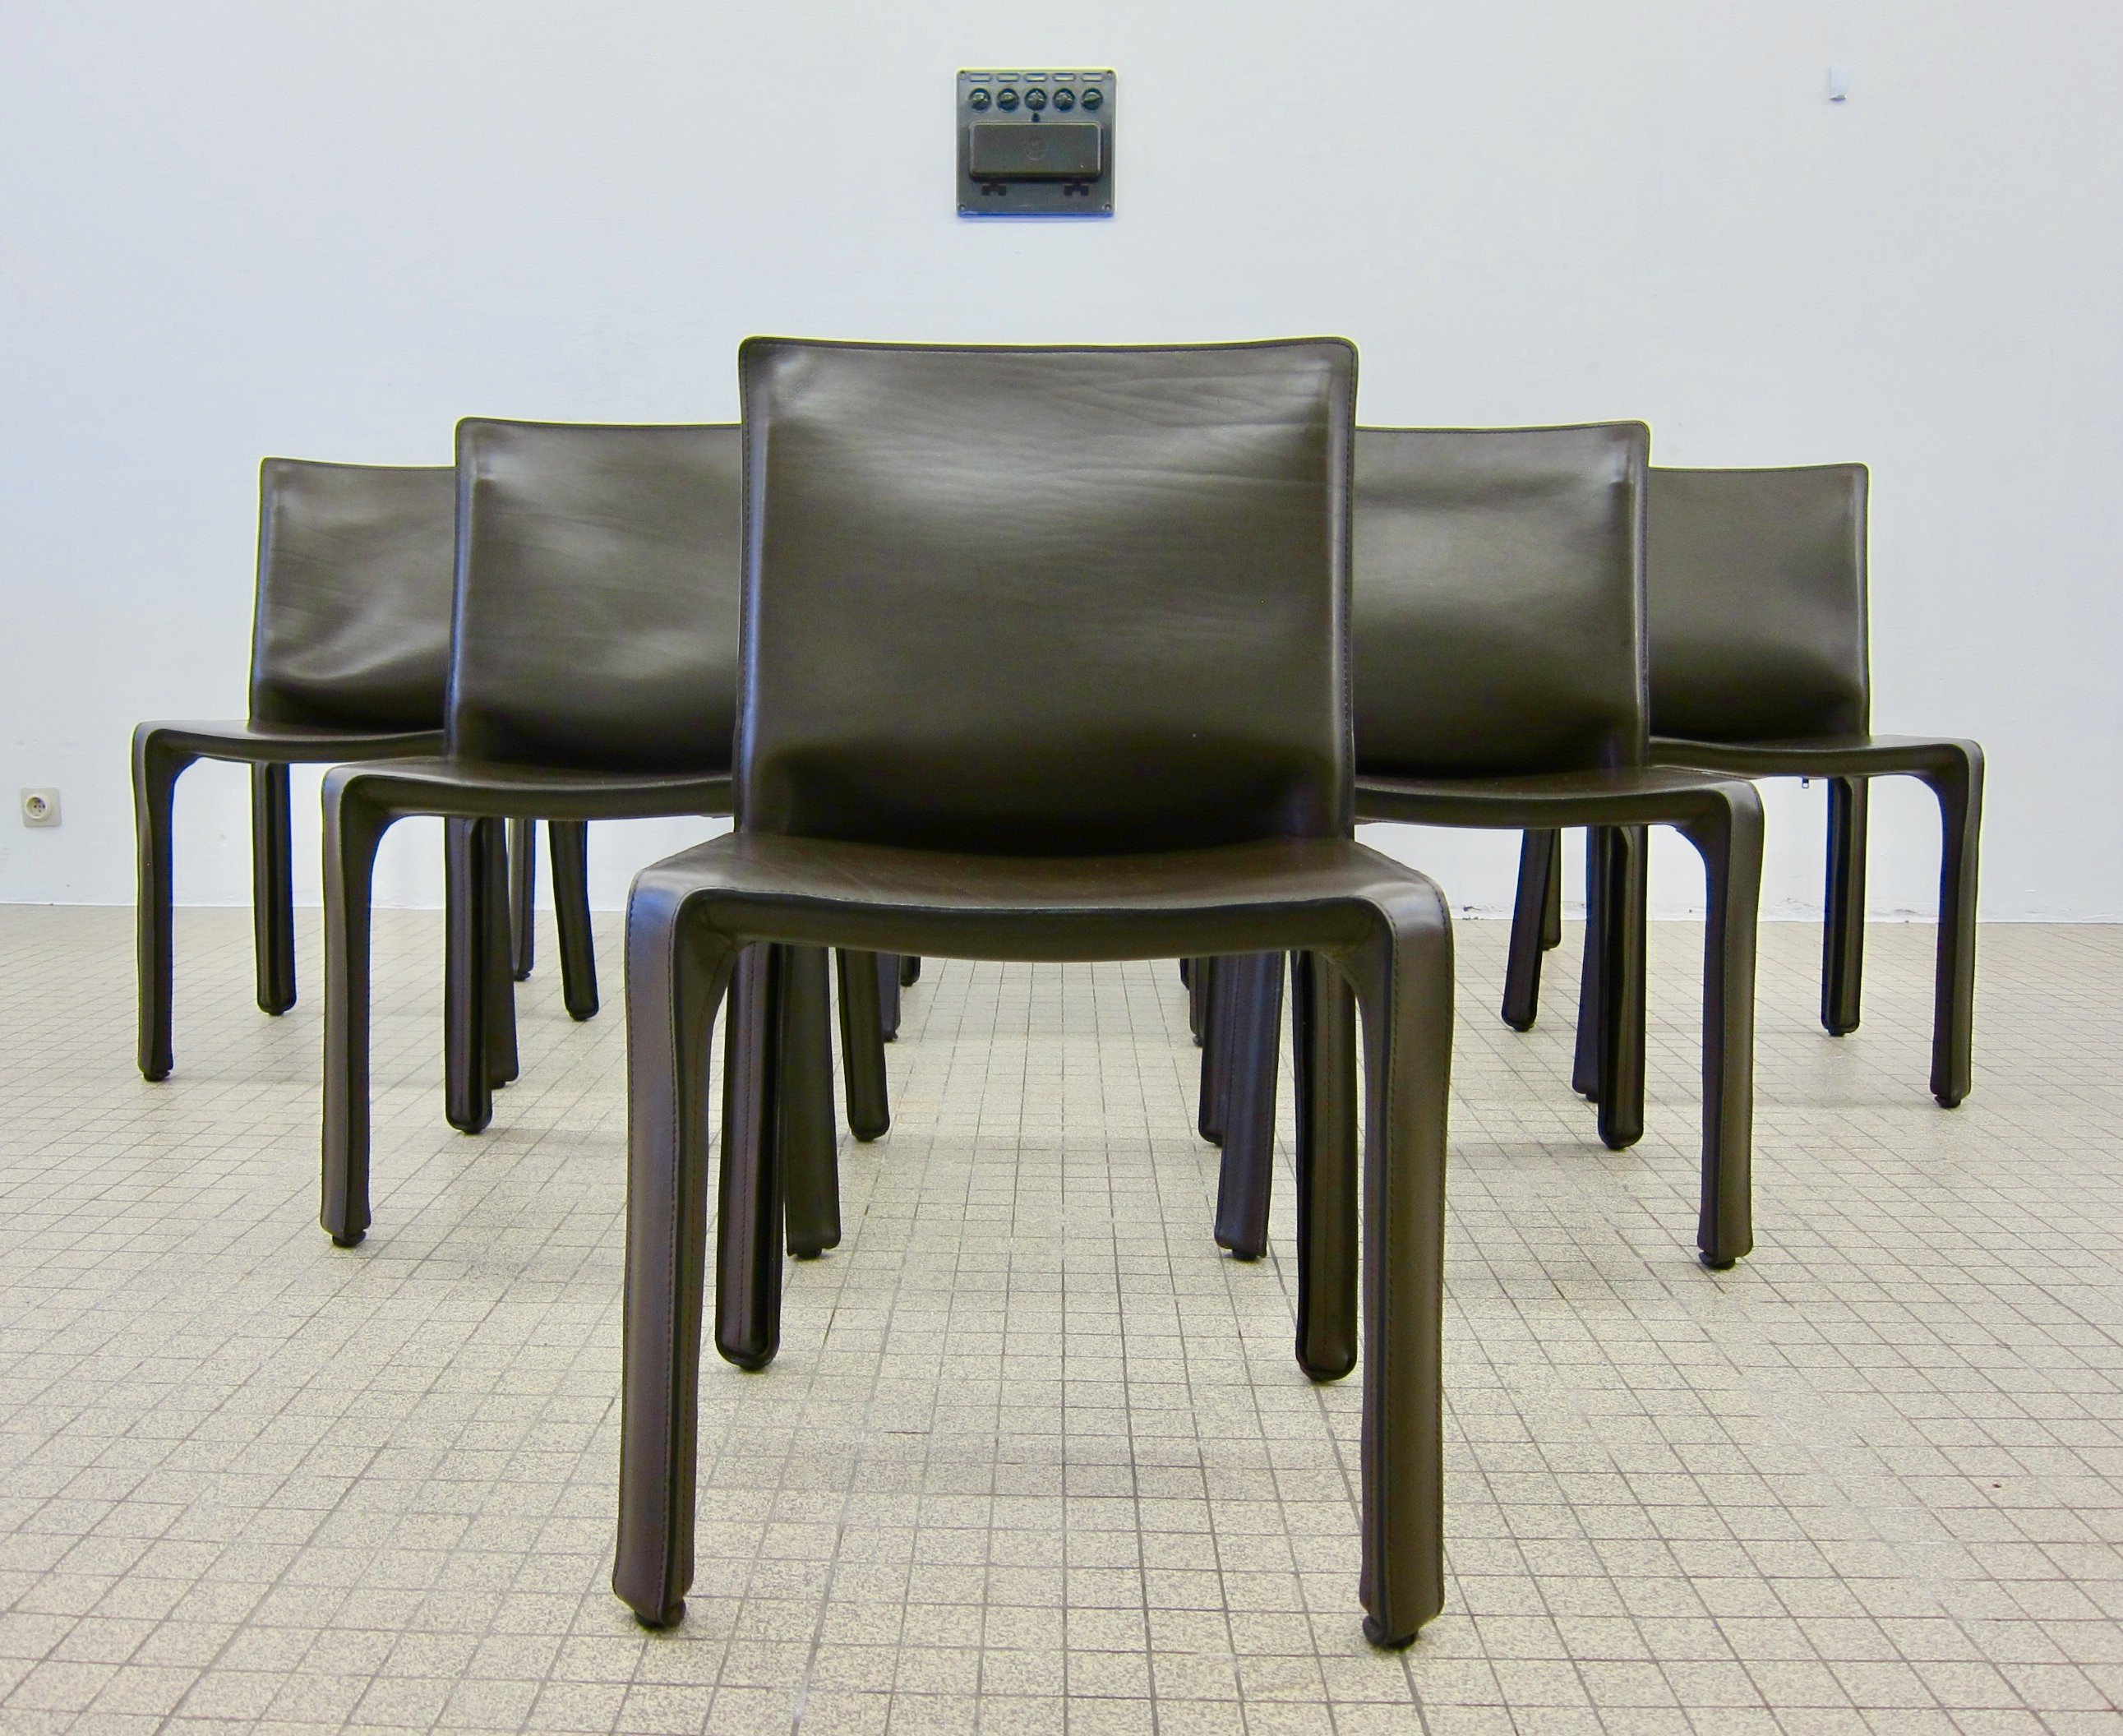 Prime Set Of 8 Brown Leather Cab412 Dining Chairs By Mario Bellini For Cassina 1977 Creativecarmelina Interior Chair Design Creativecarmelinacom